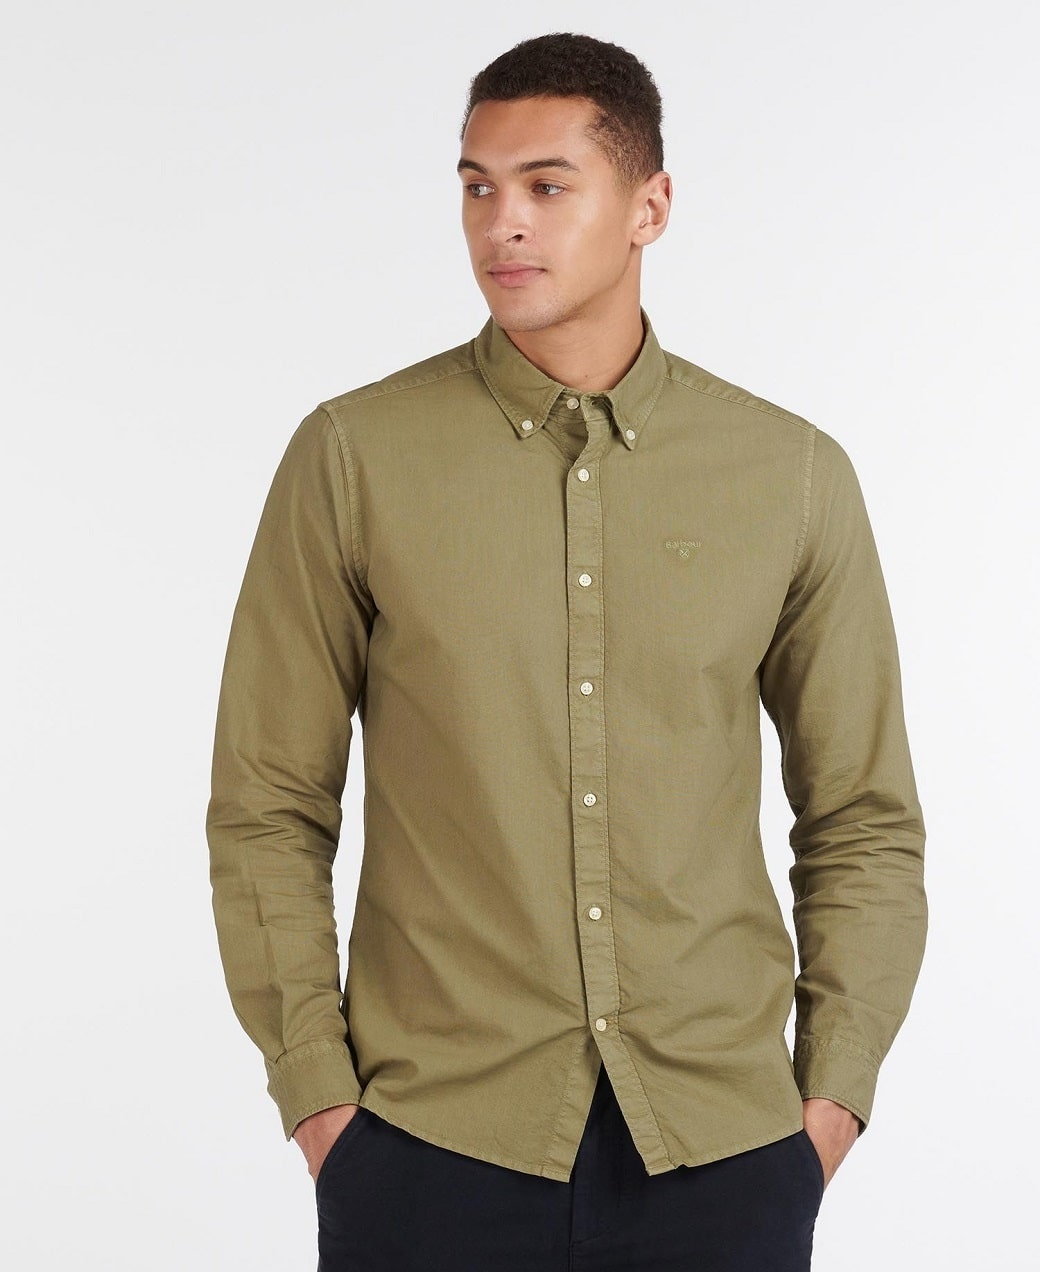 Barbour Oxford 13 Tailored Shirt Olive-2